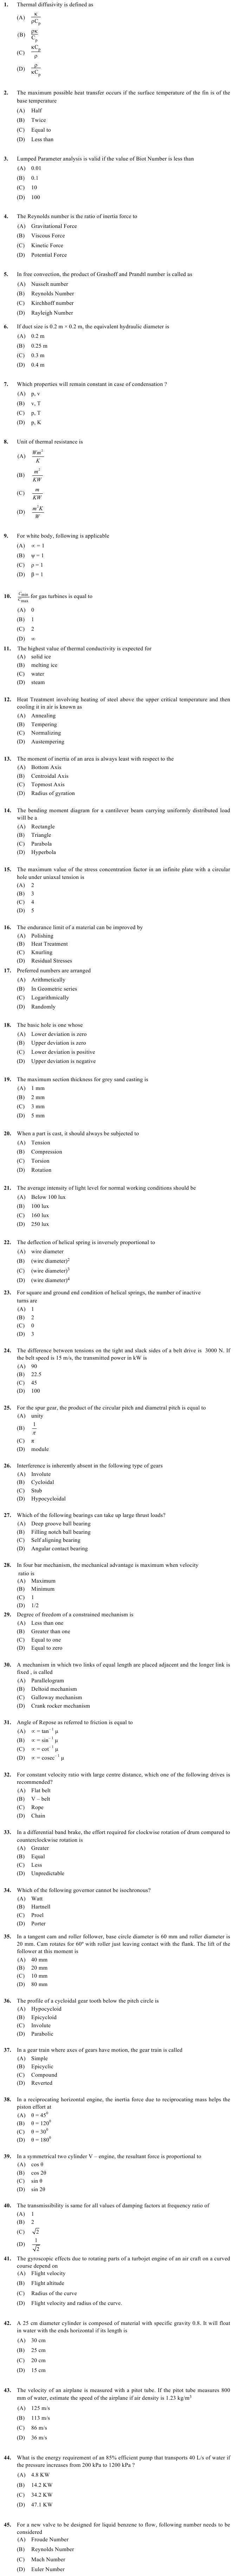 OJEE 2013 Question Paper for PGAT Mechanical